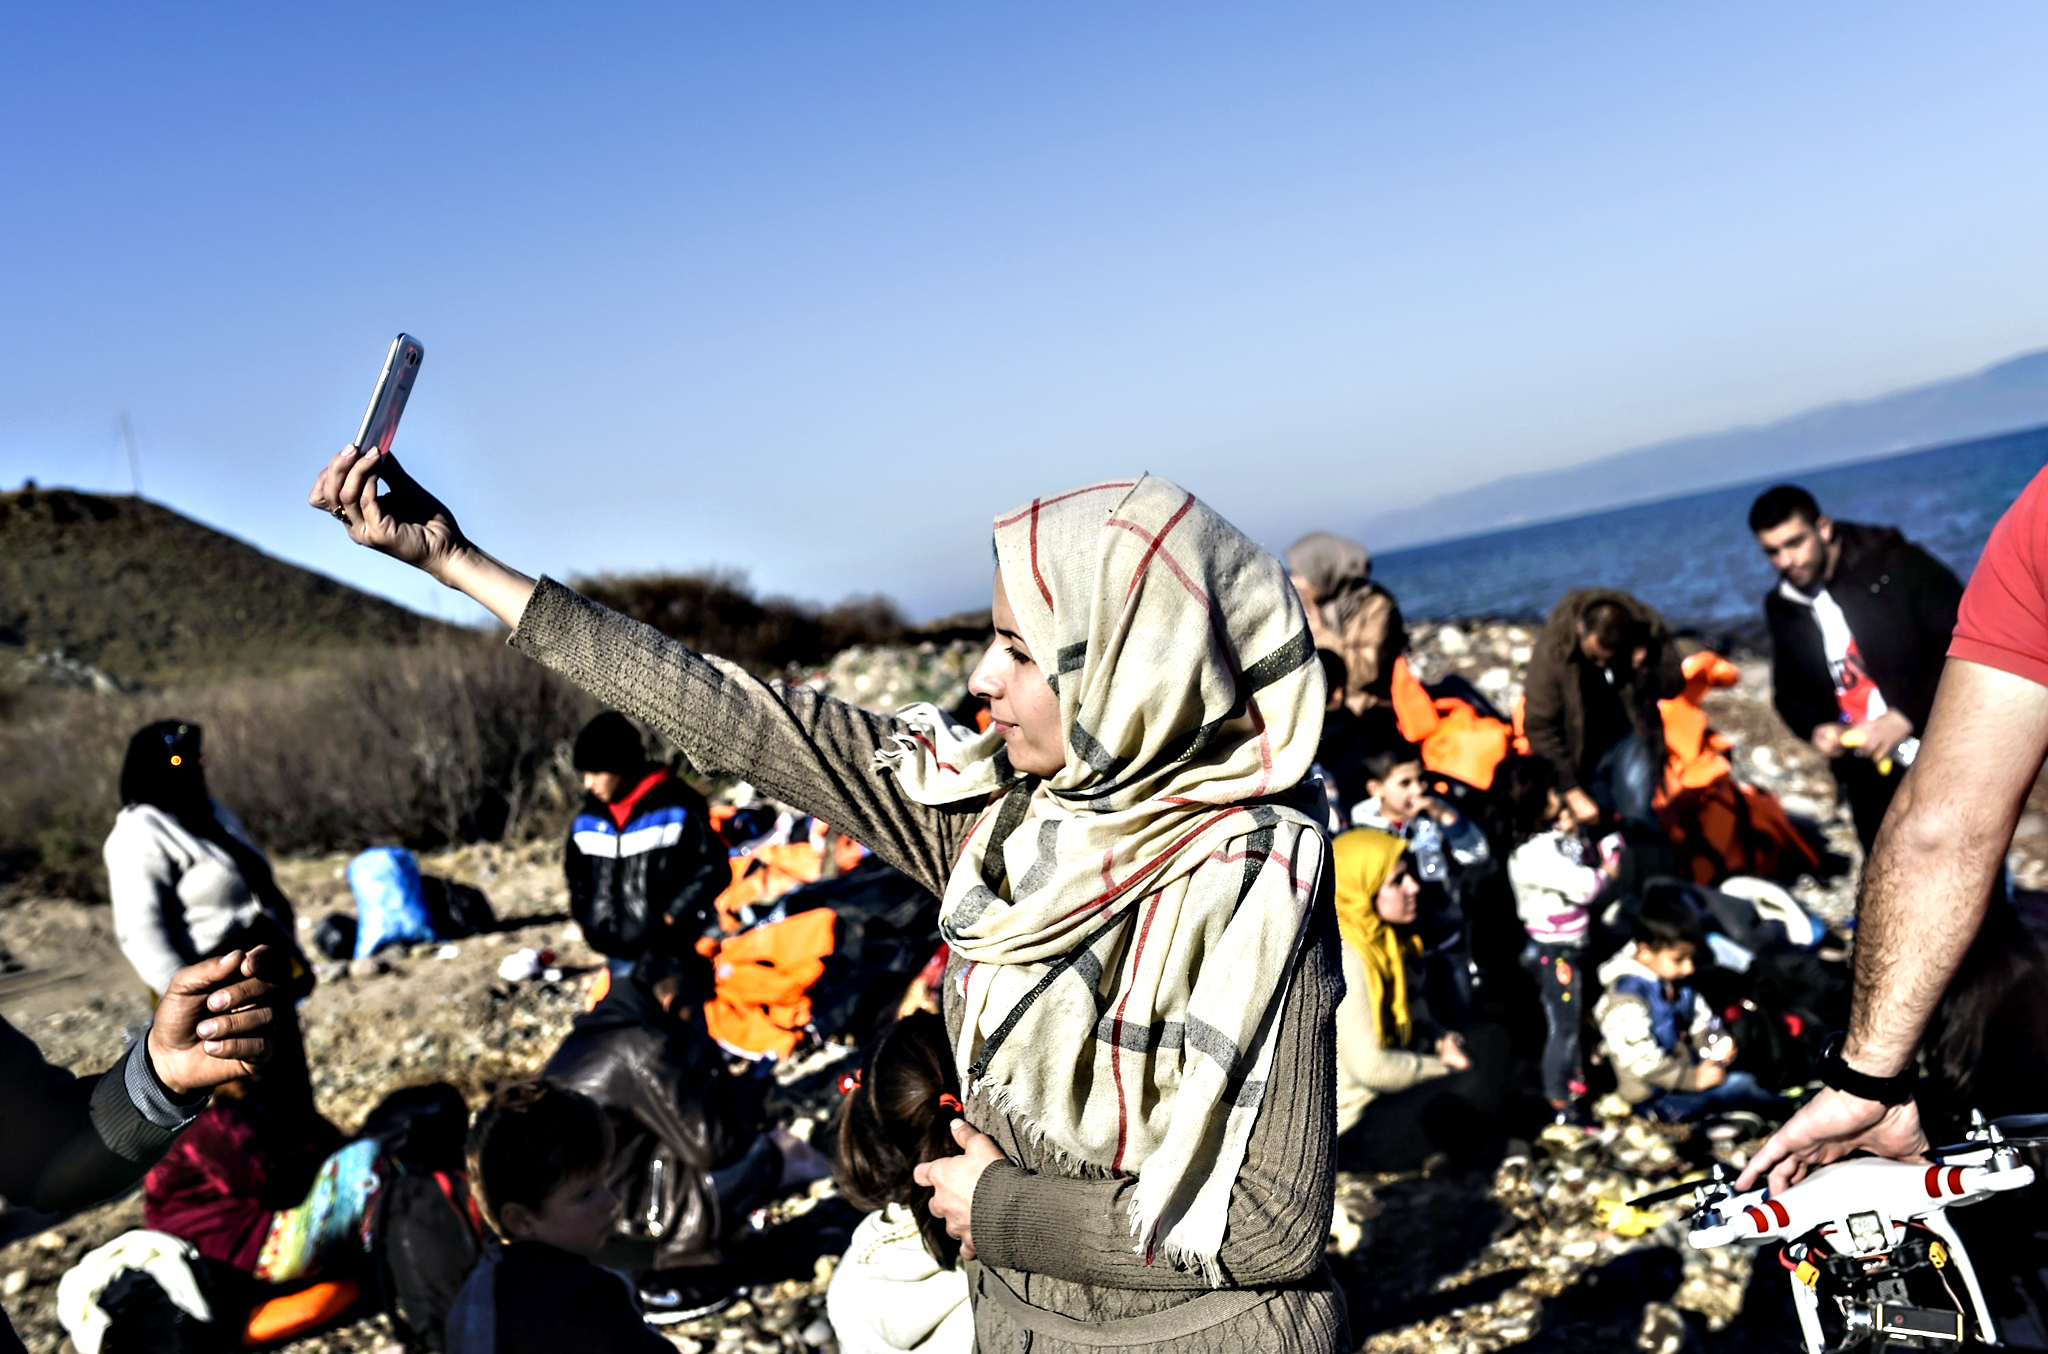 A woman takes a selfie after arriving, along with other migrants and refugees, on the Greek island of Lesbos by crossing the Aegean Sea from Turkey on November 13, 2015. EU leaders on November 12 struck an aid-for-cooperation deal with Africa and proposed a summit this year with Turkey in a two-front push with wary partners to tackle an unprecedented migrant crisis